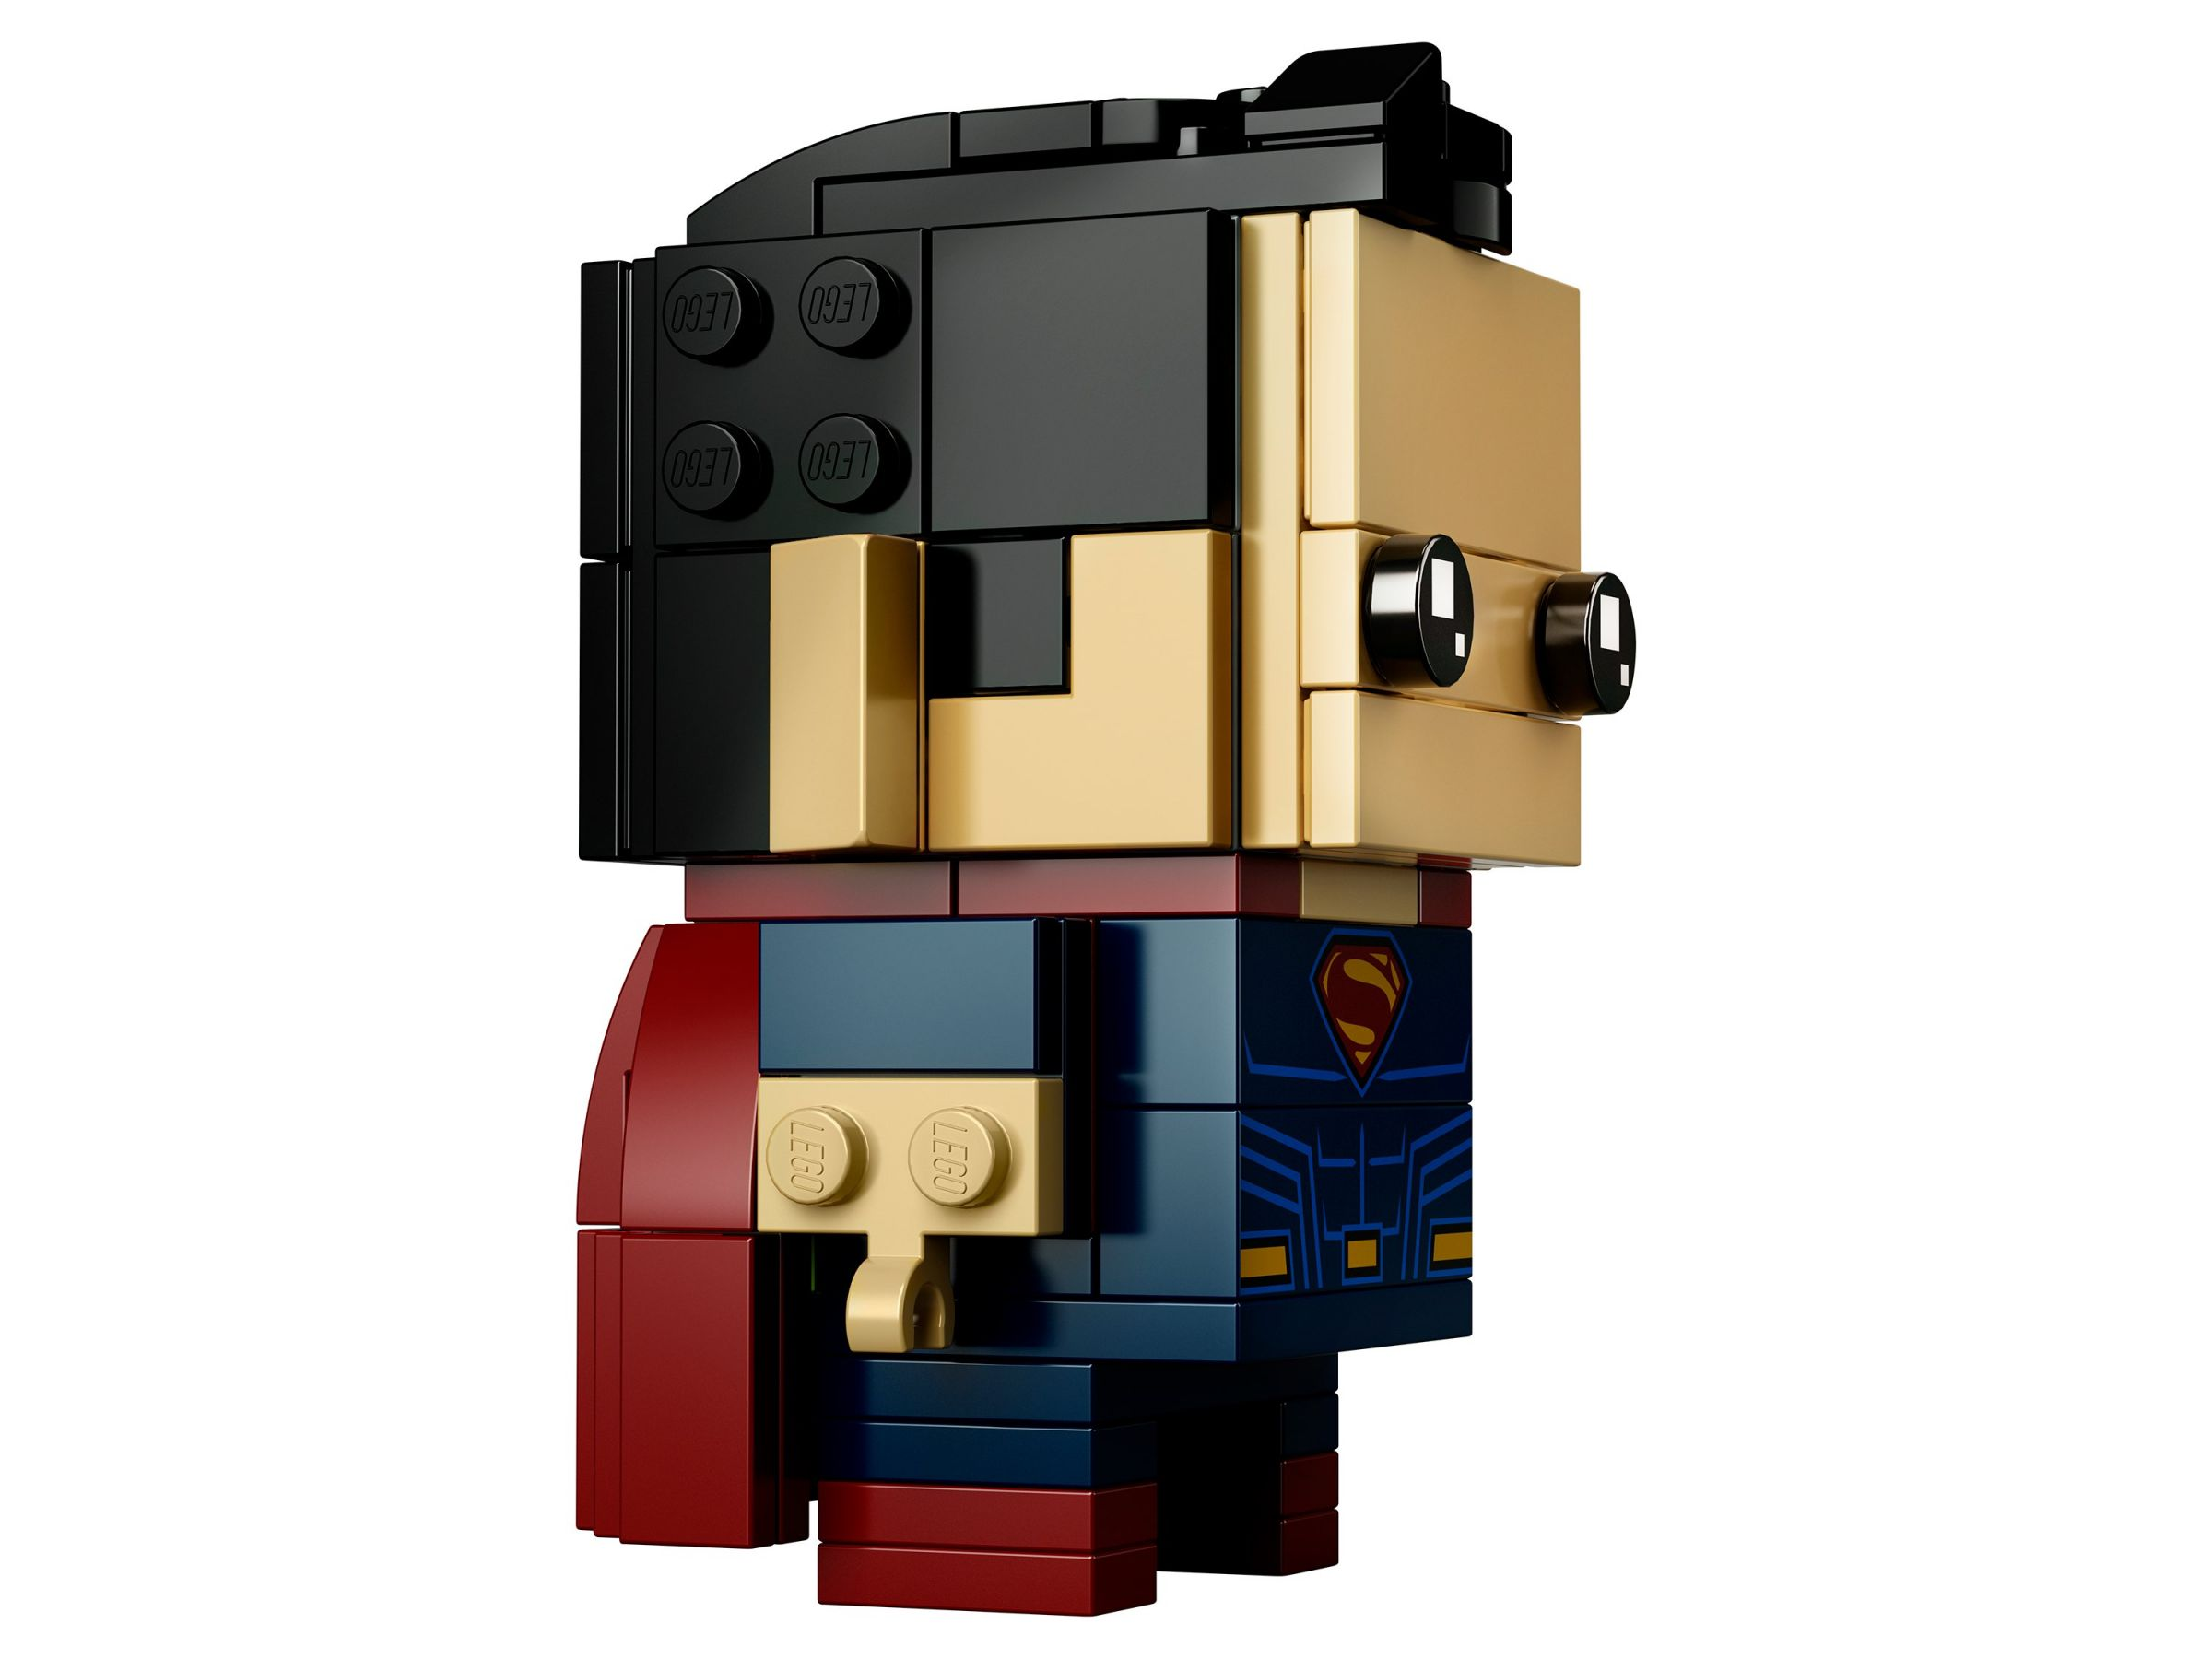 LEGO BrickHeadz 41610 Tactical Batman™ & Superman™ LEGO_BrickHeadz_41610_Tactical_Batman_Superman_img04.jpg